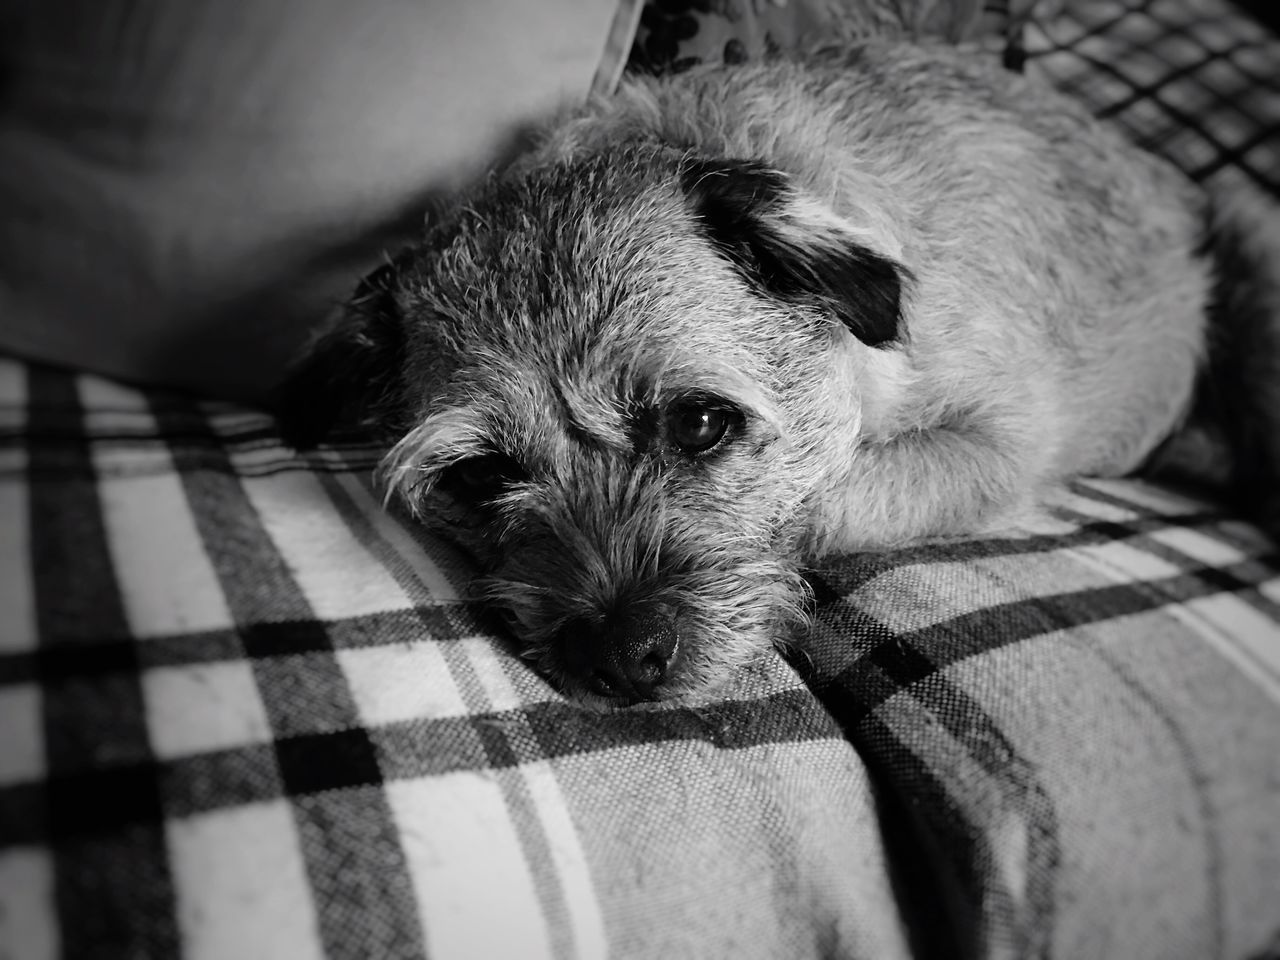 Boarder Terrier Pets Dog Tireddog Toomuchfun  Dog❤ Oneeyeopen Leeds, UK Canon60d Blackandwhite Photography Blackandwhite 50mm Monochrome The Week On Eyem Monochrome Photography Always Be Cozy